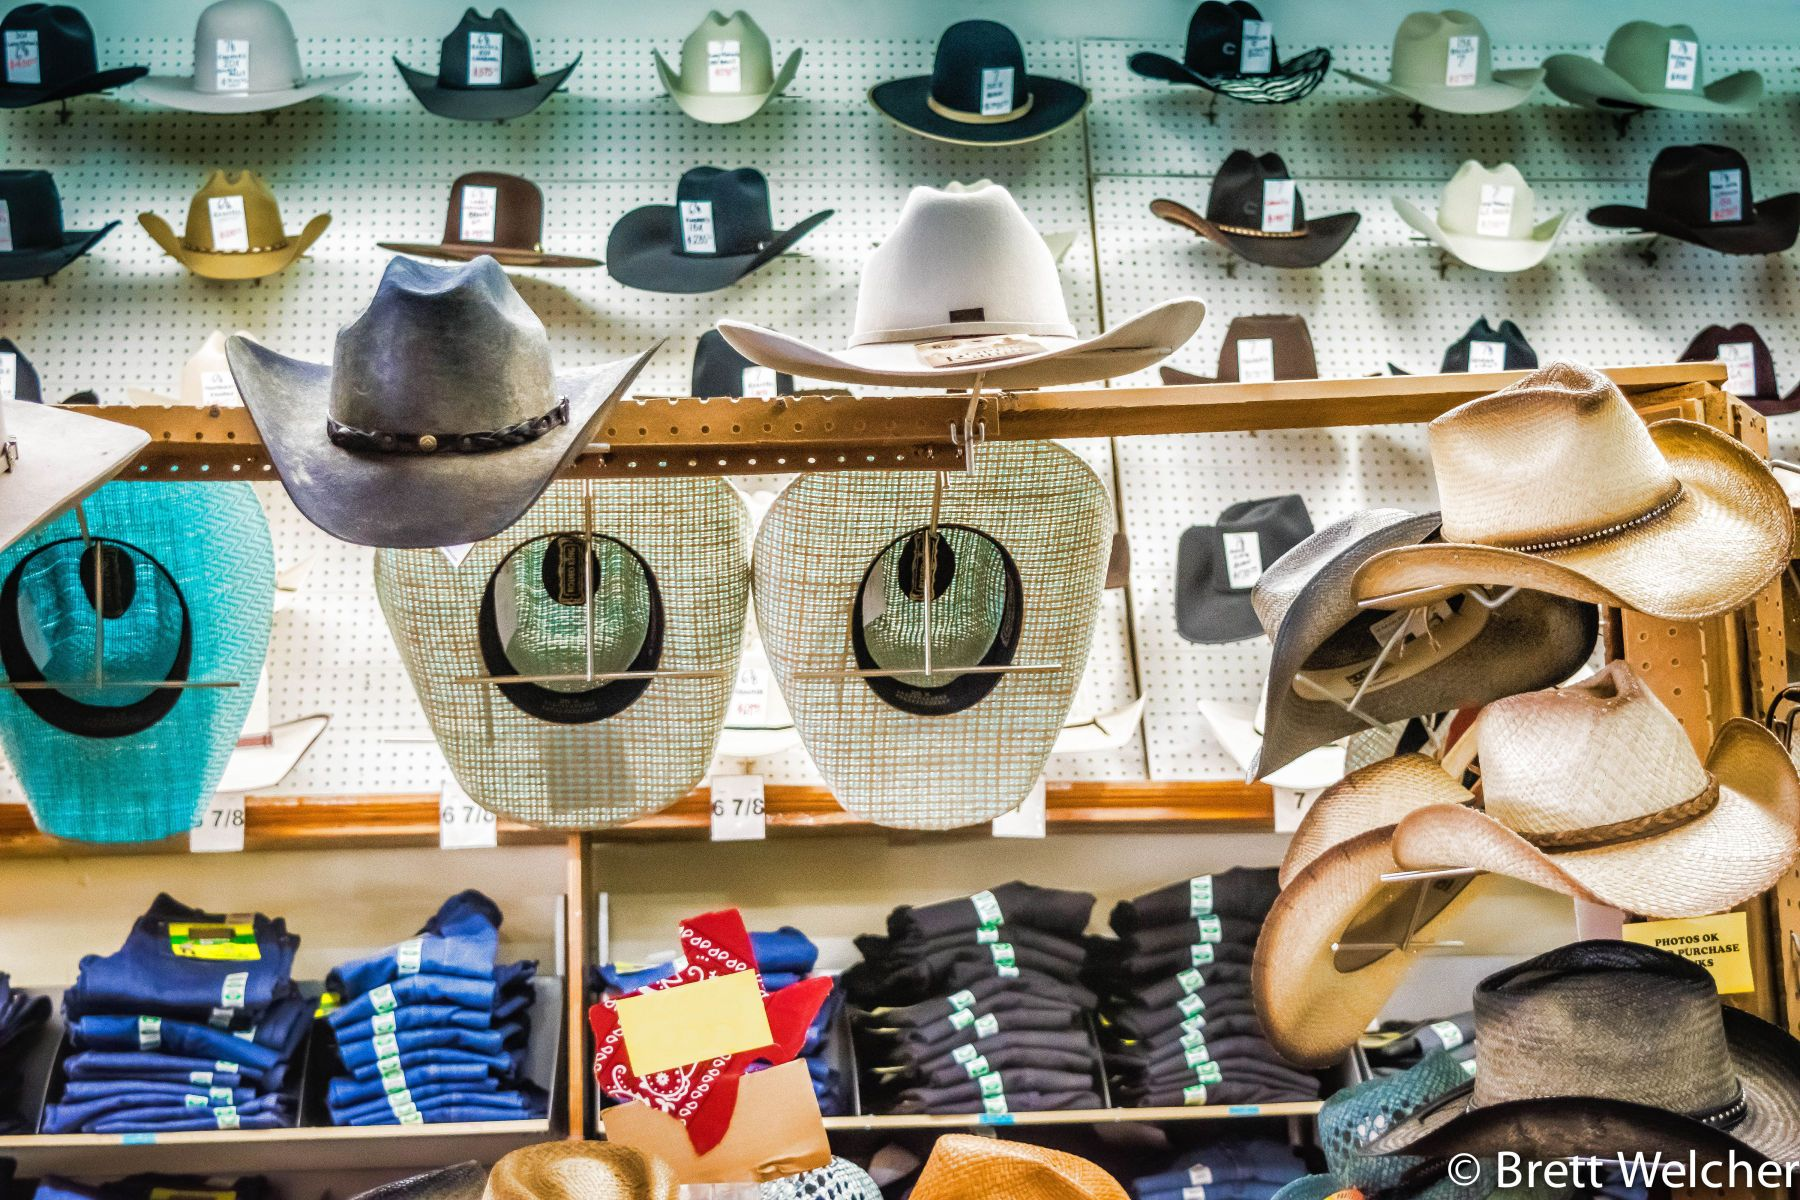 10-Gallon Hats for Sale - Fort Worth, Texas